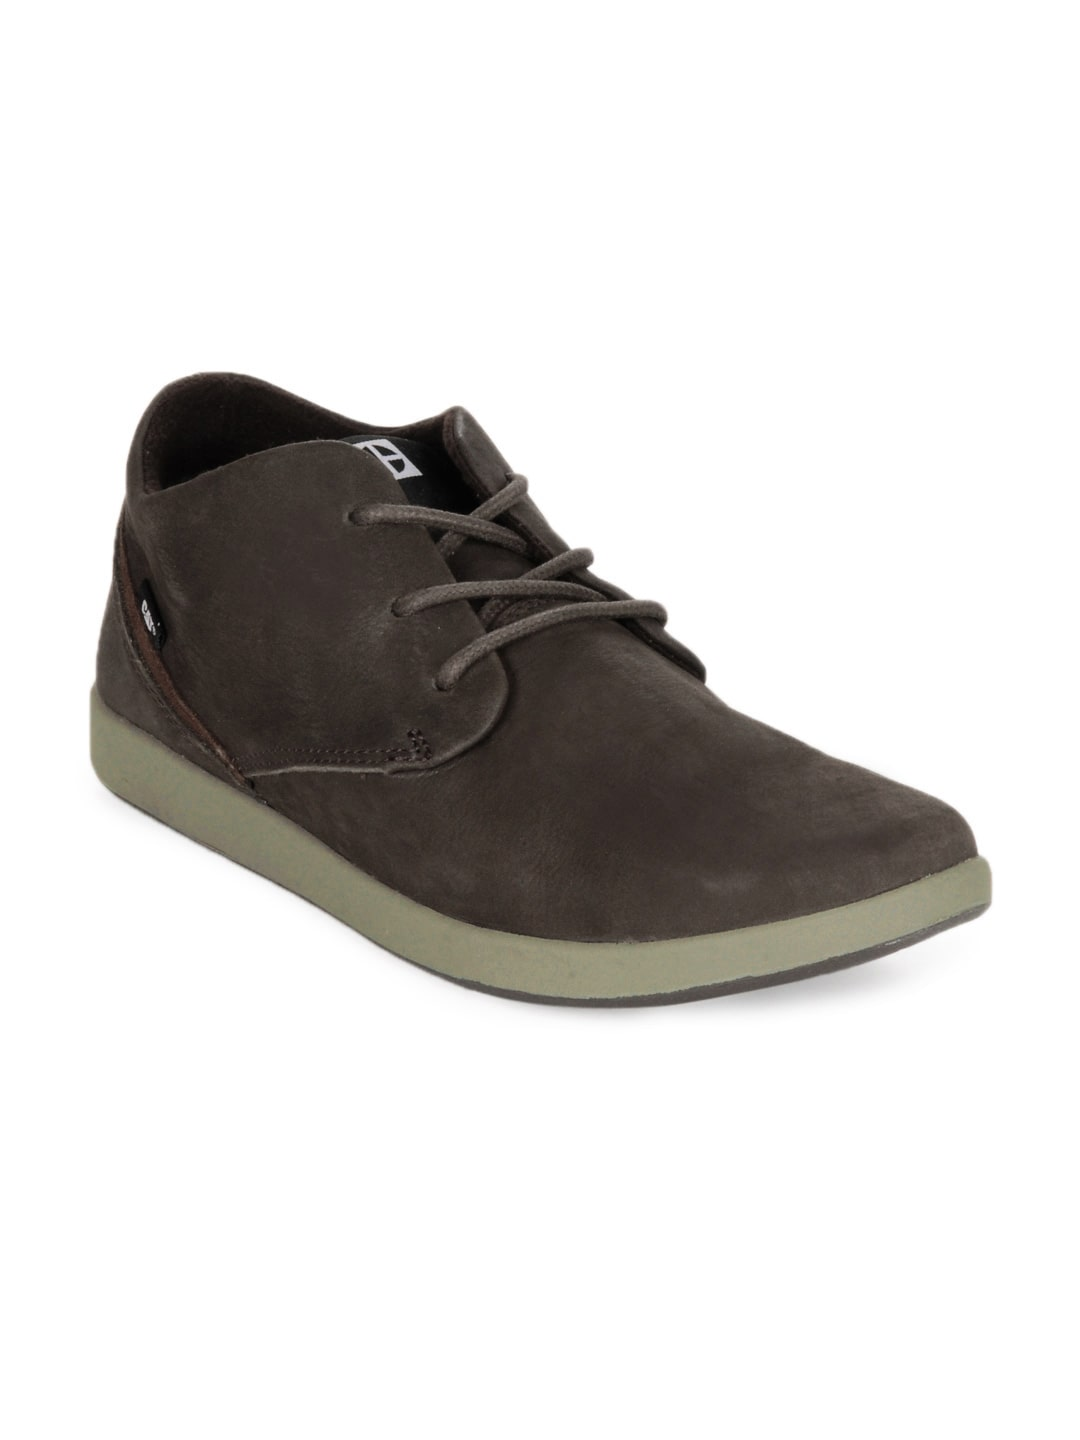 Fastrack Shoes Price